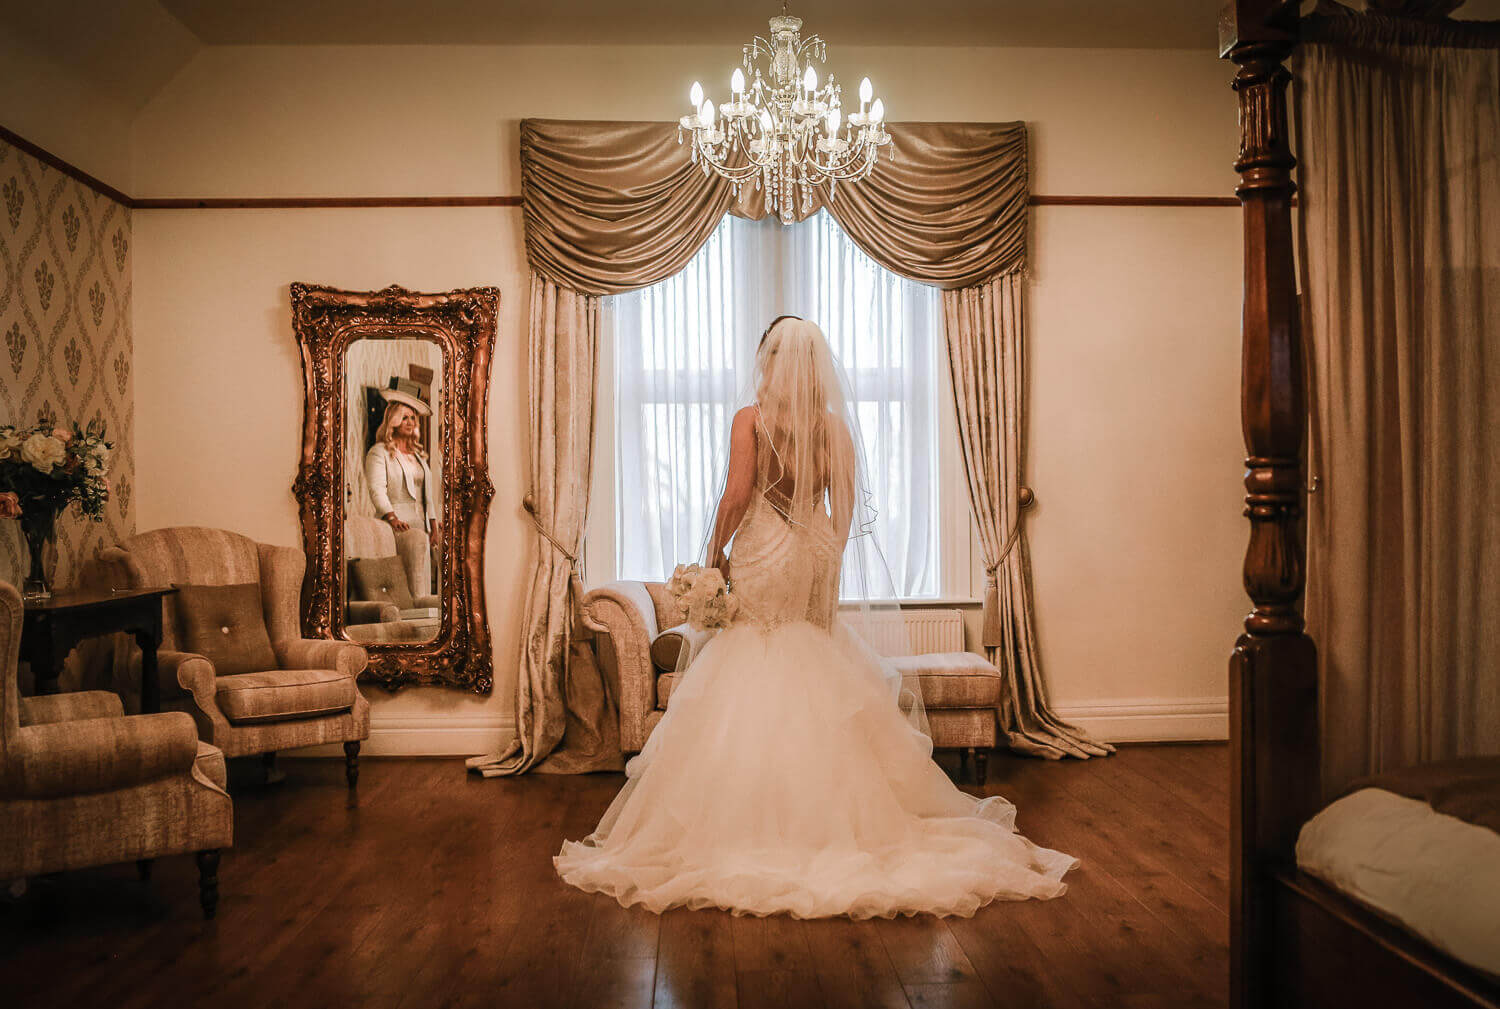 Bride in West Tower bridal suite. Lancashire wedding photographer Wes Simpson